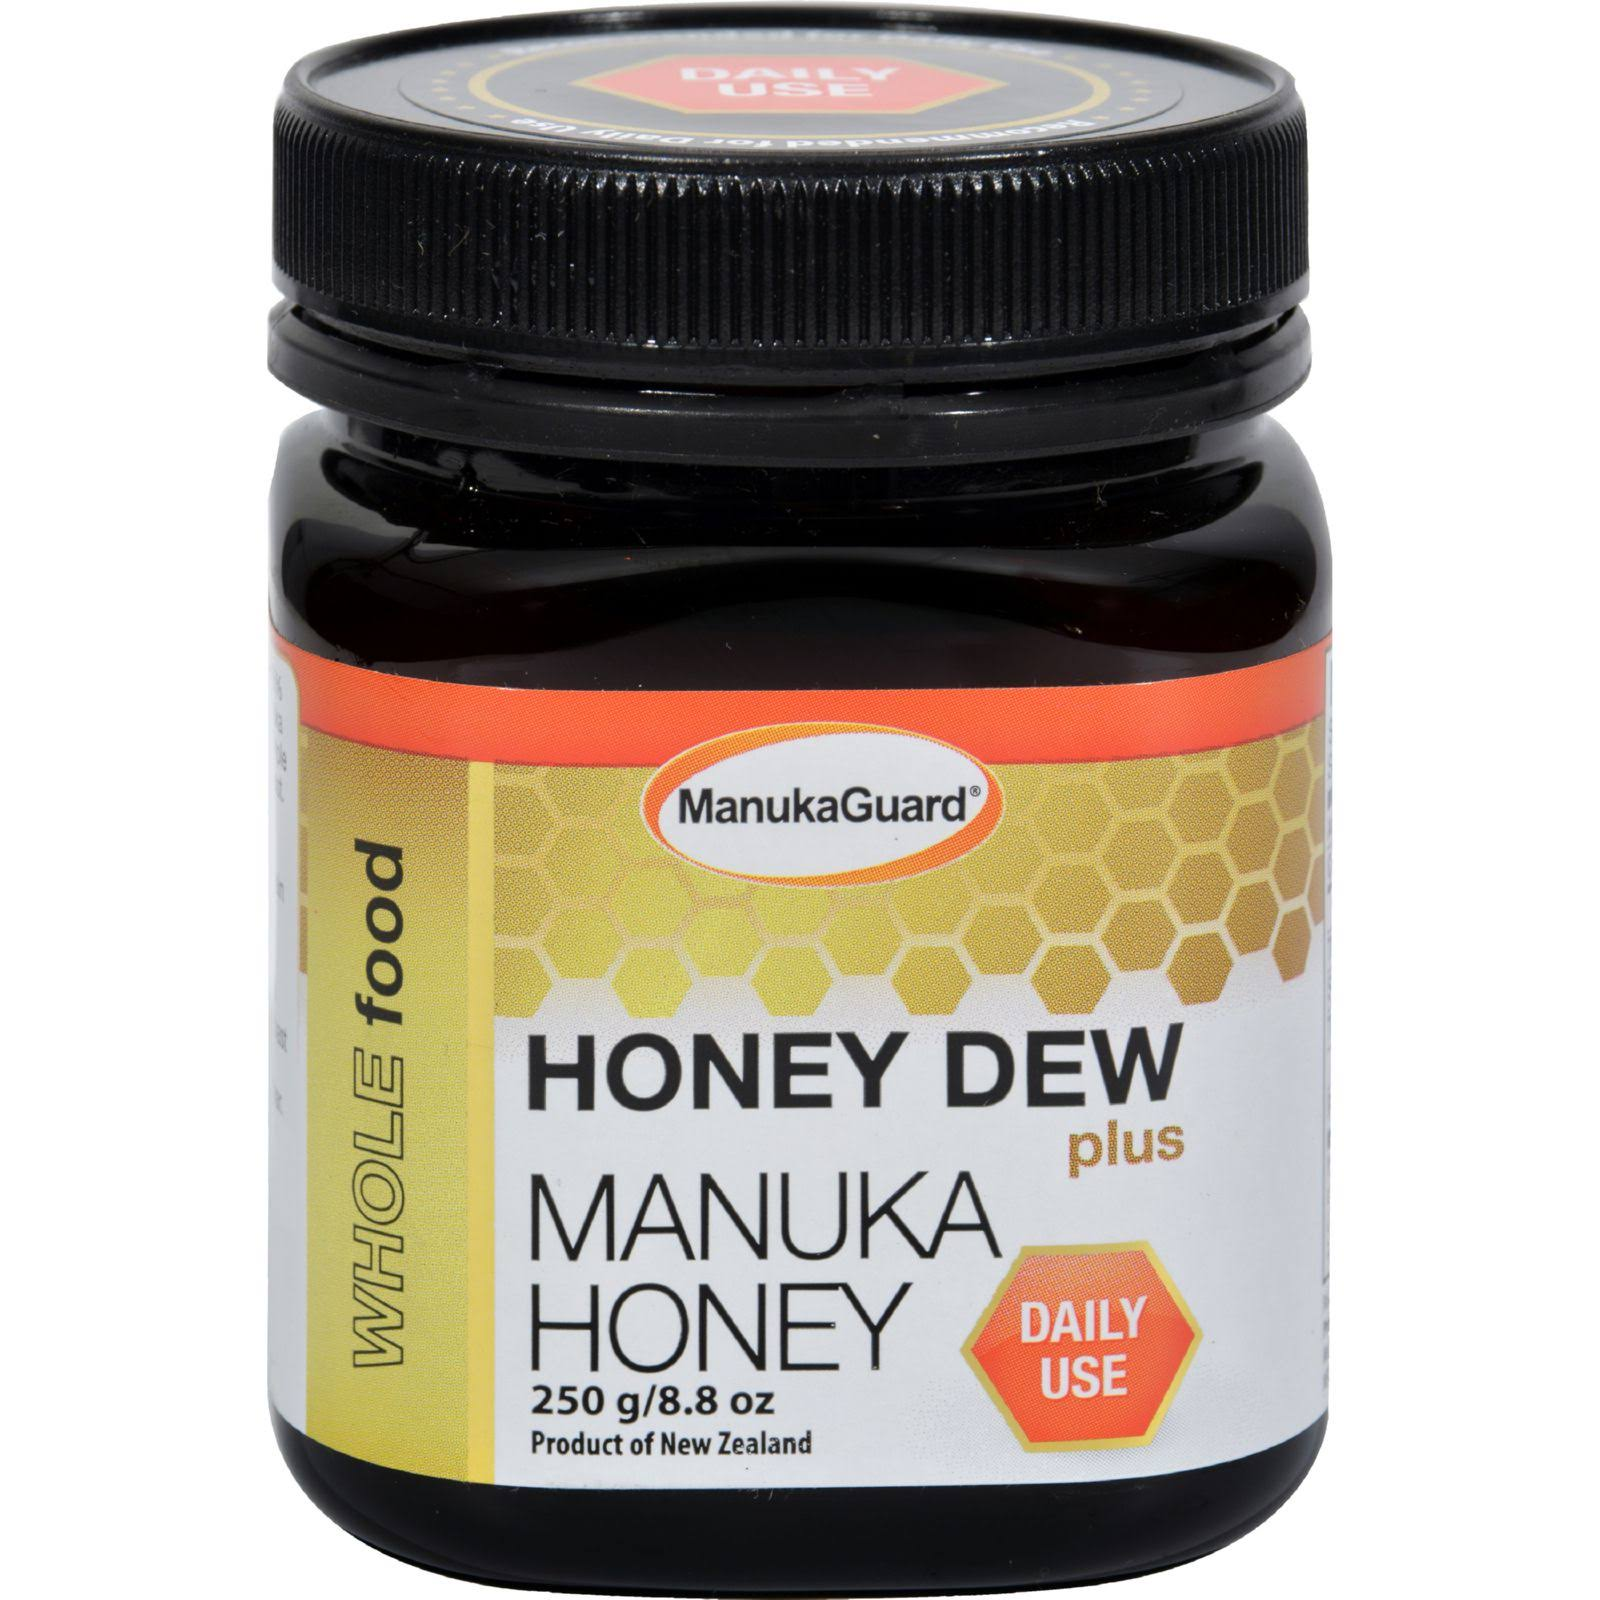 Manuka Honey Table Blend ManukaGuard Supplement - 8.8oz